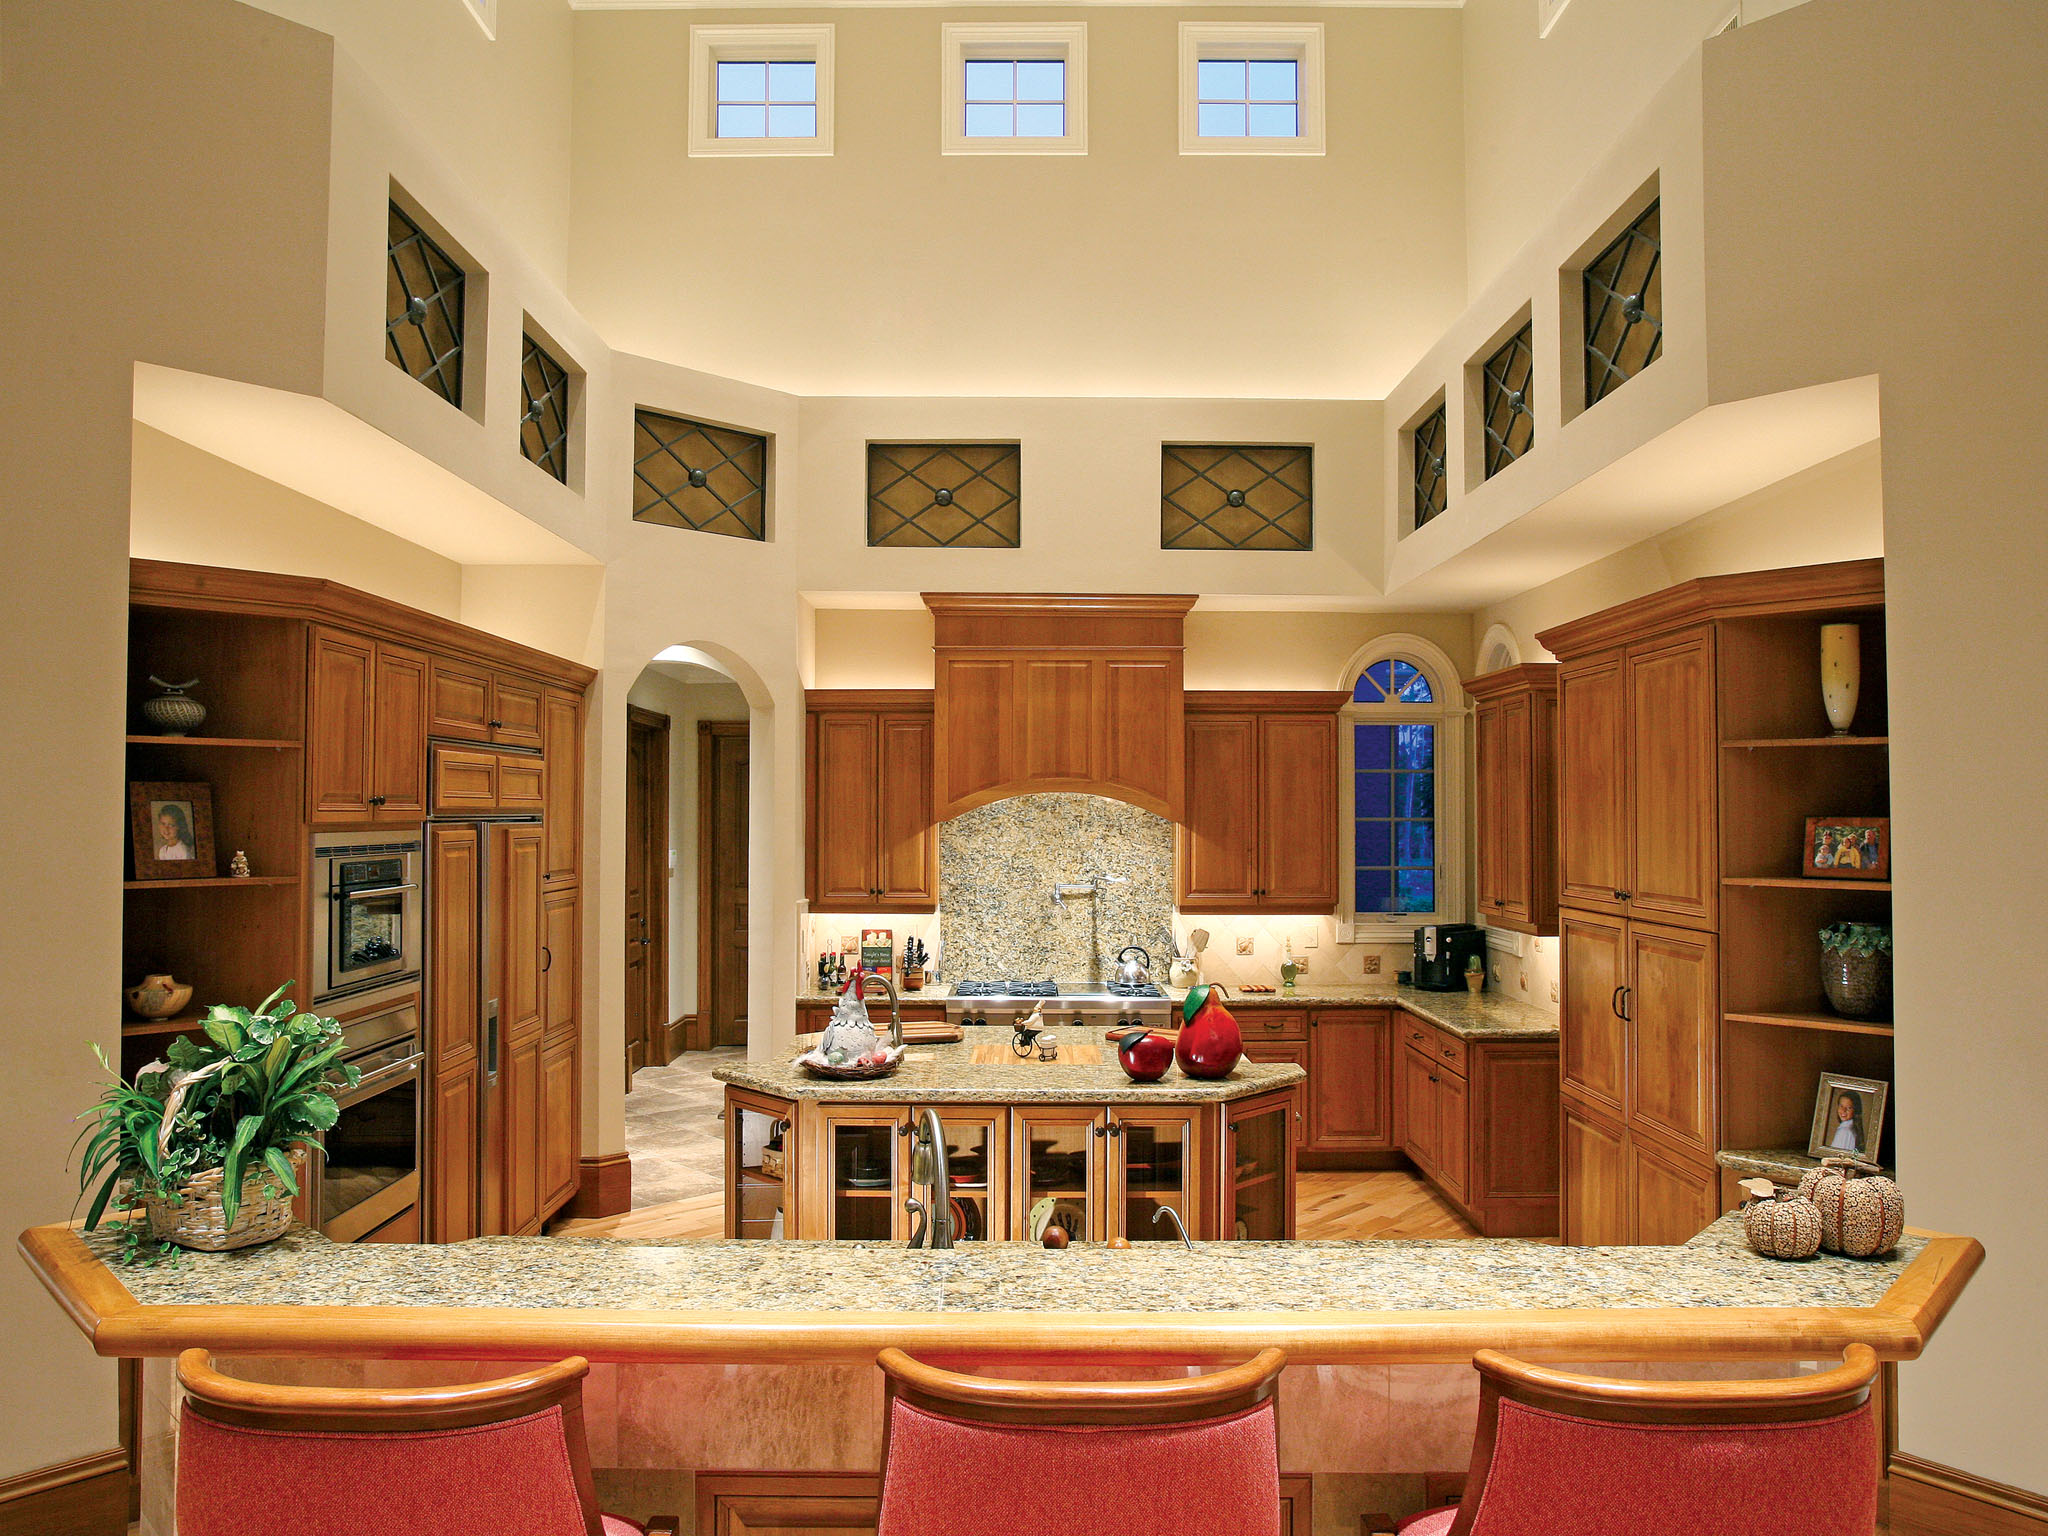 House Kitchen Model Of Mediterranean Frankfort Kitchen Remodel Halo